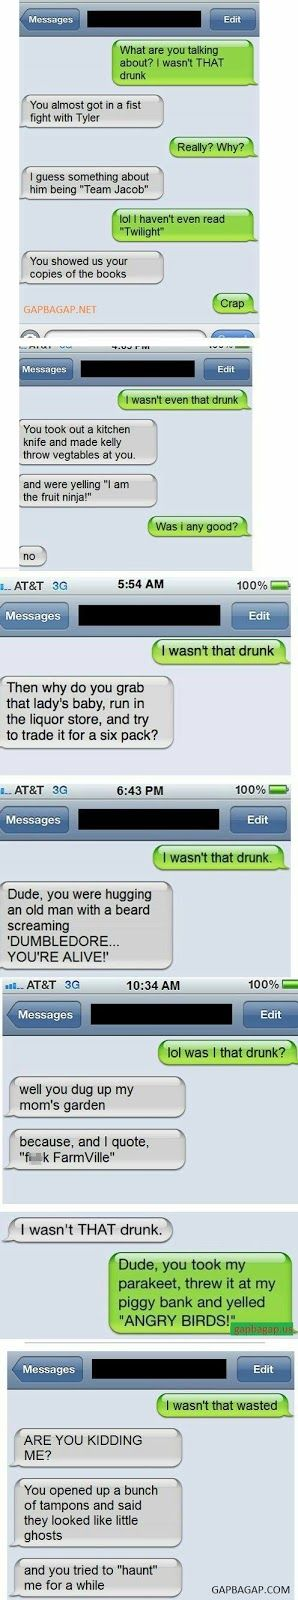 Top 6 Hilarious Text Messages About Drunks